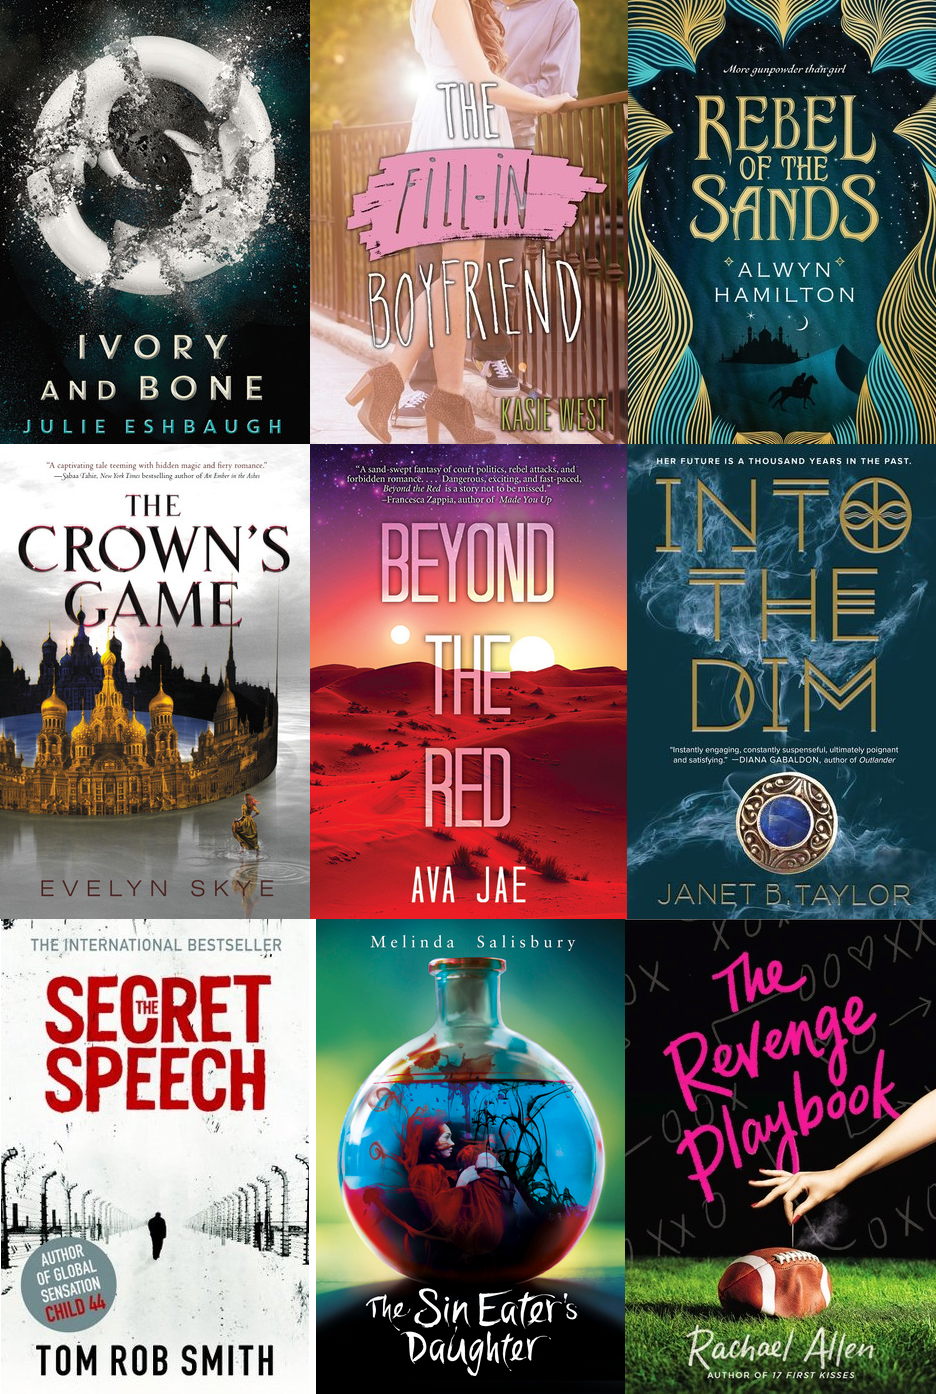 24 hour readathon tbr